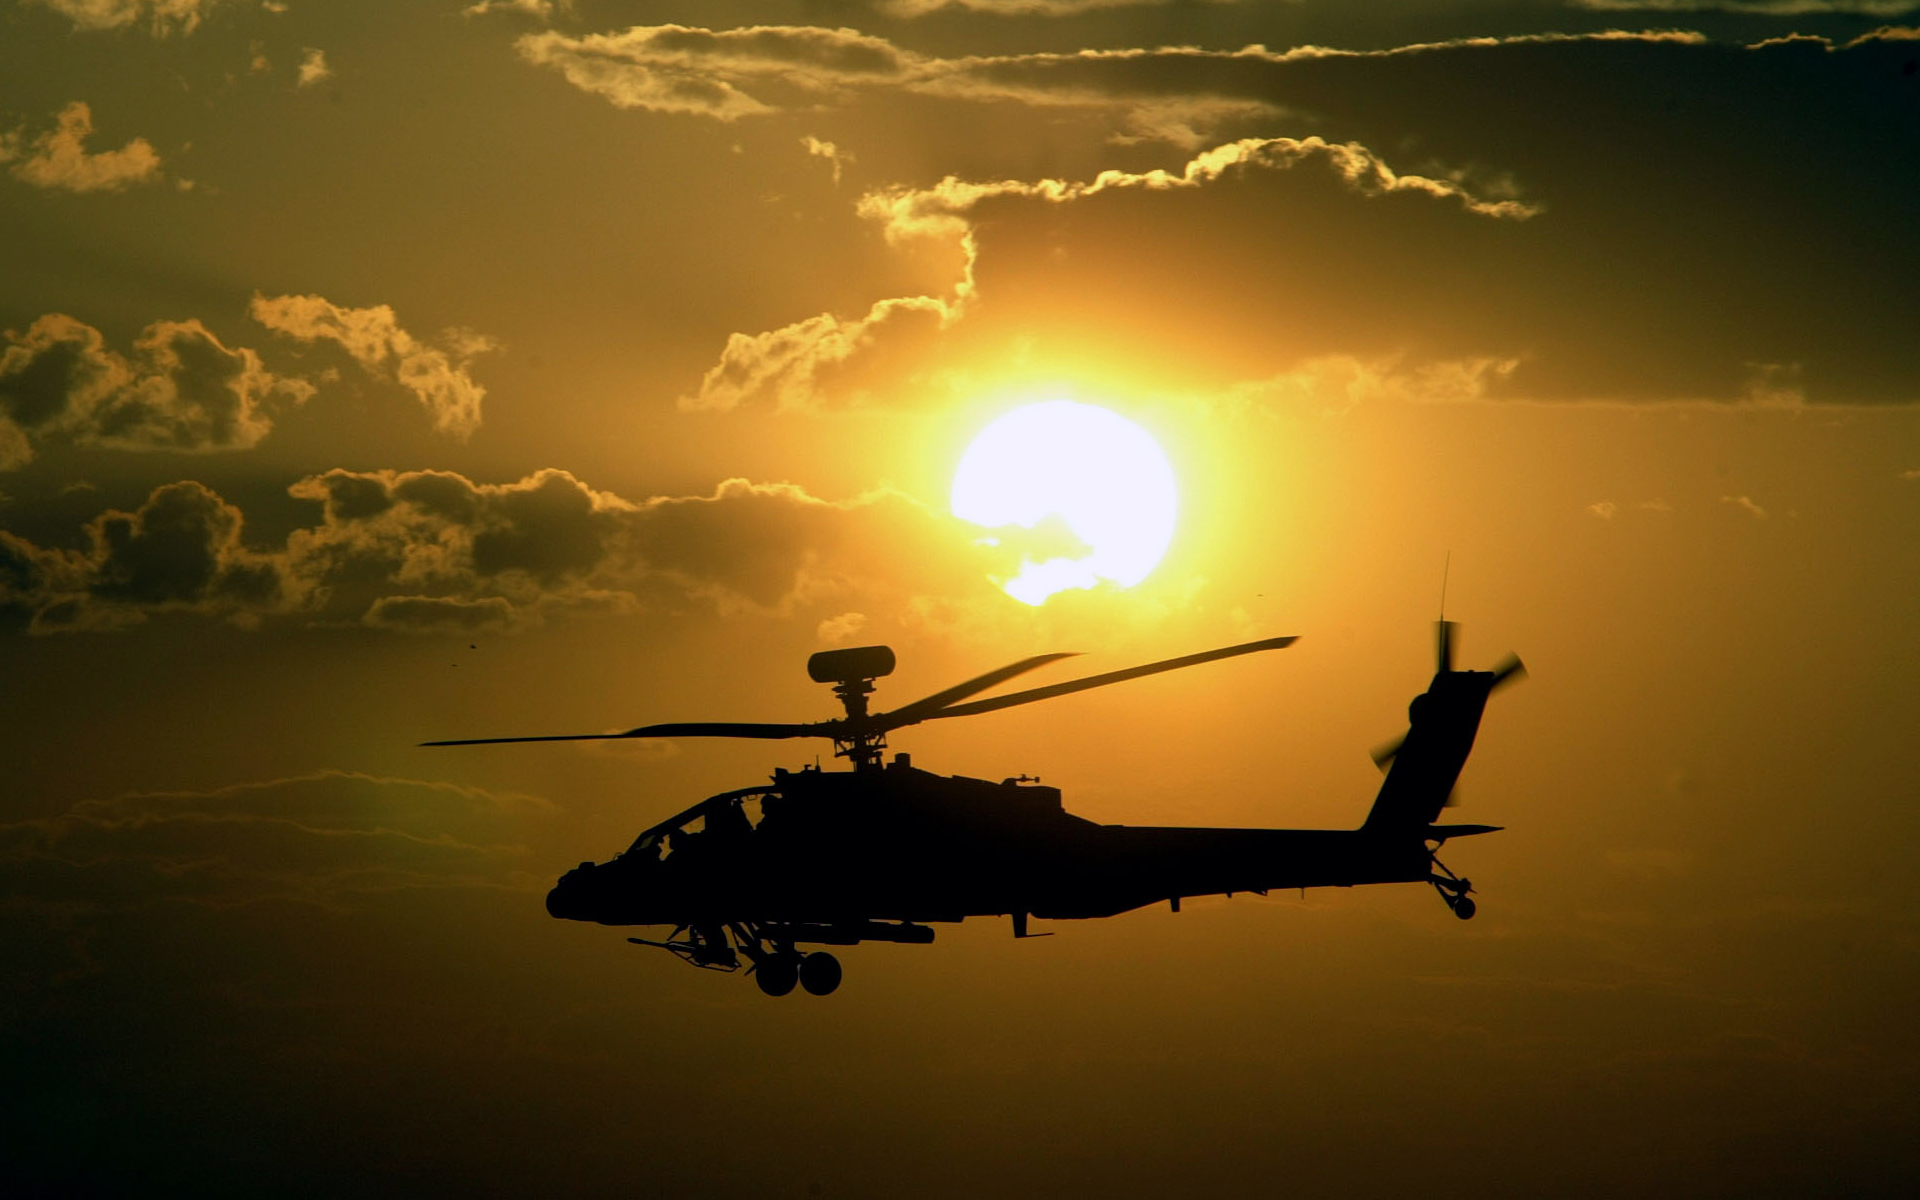 Military helicopter at sunset